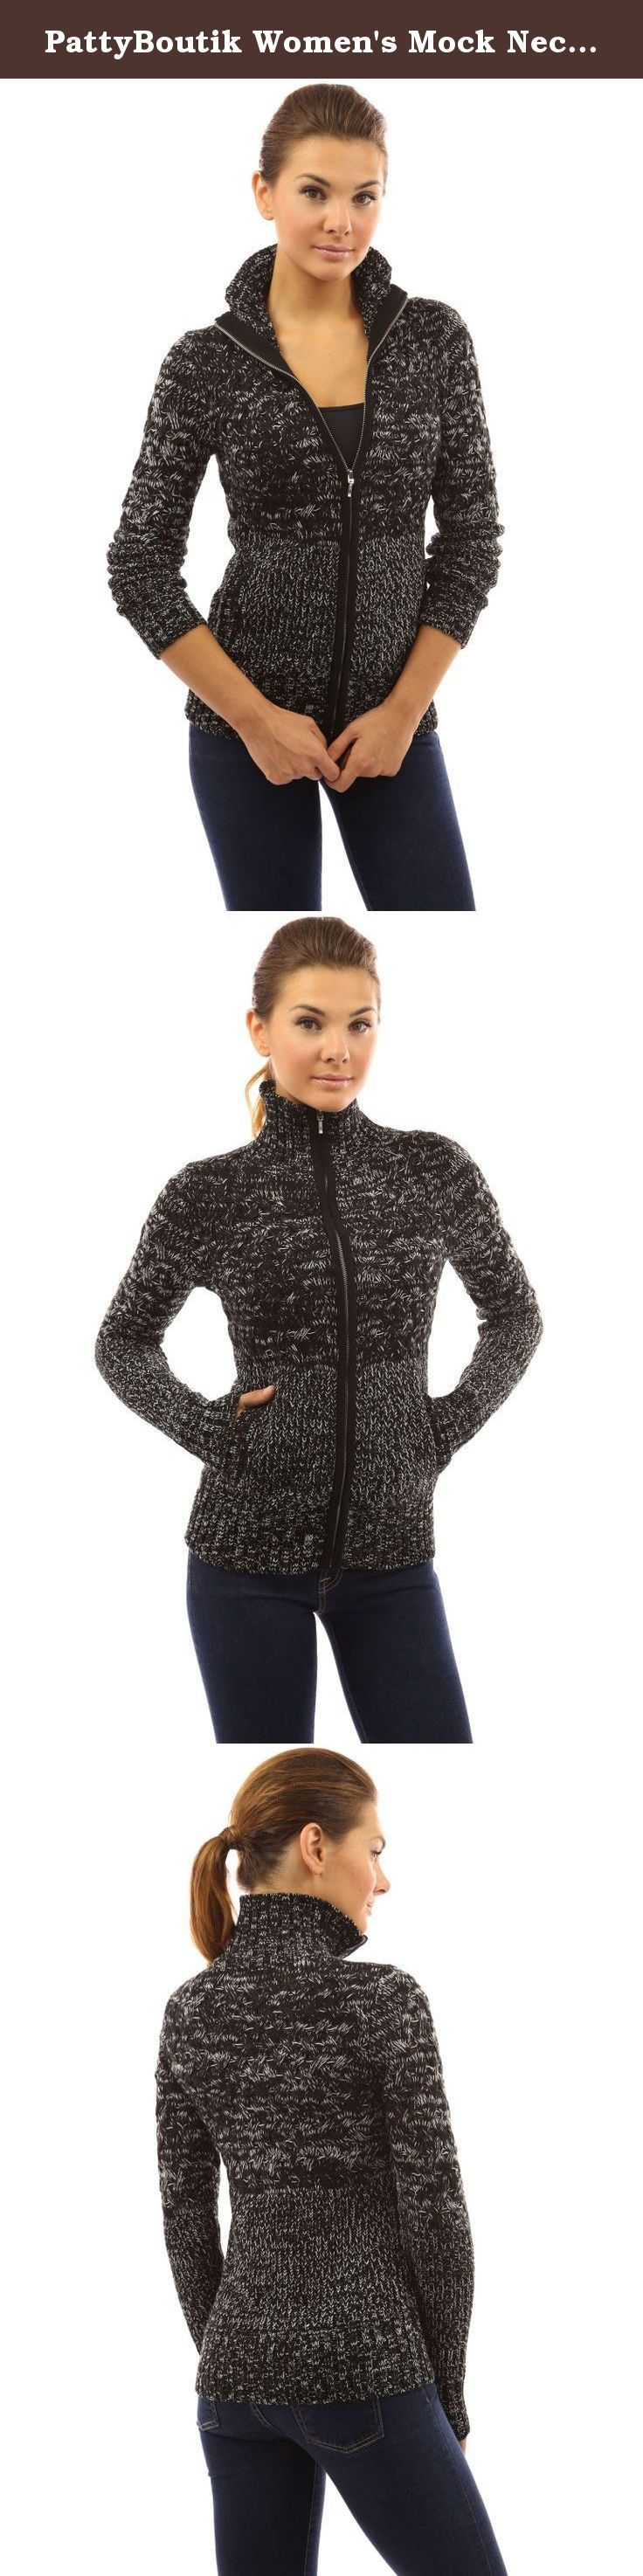 PattyBoutik Women's Mock Neck Marled Zip Up Cardigan (Black and White M). PattyBoutik Ribbed Stand Collar Mock Neck Kangaroo Pocket Zip Up Front Marled Cable Knit Jacket Sweater Cardigan. Model in pictures is 5 feet 8 inches (173cm) tall wearing size S.